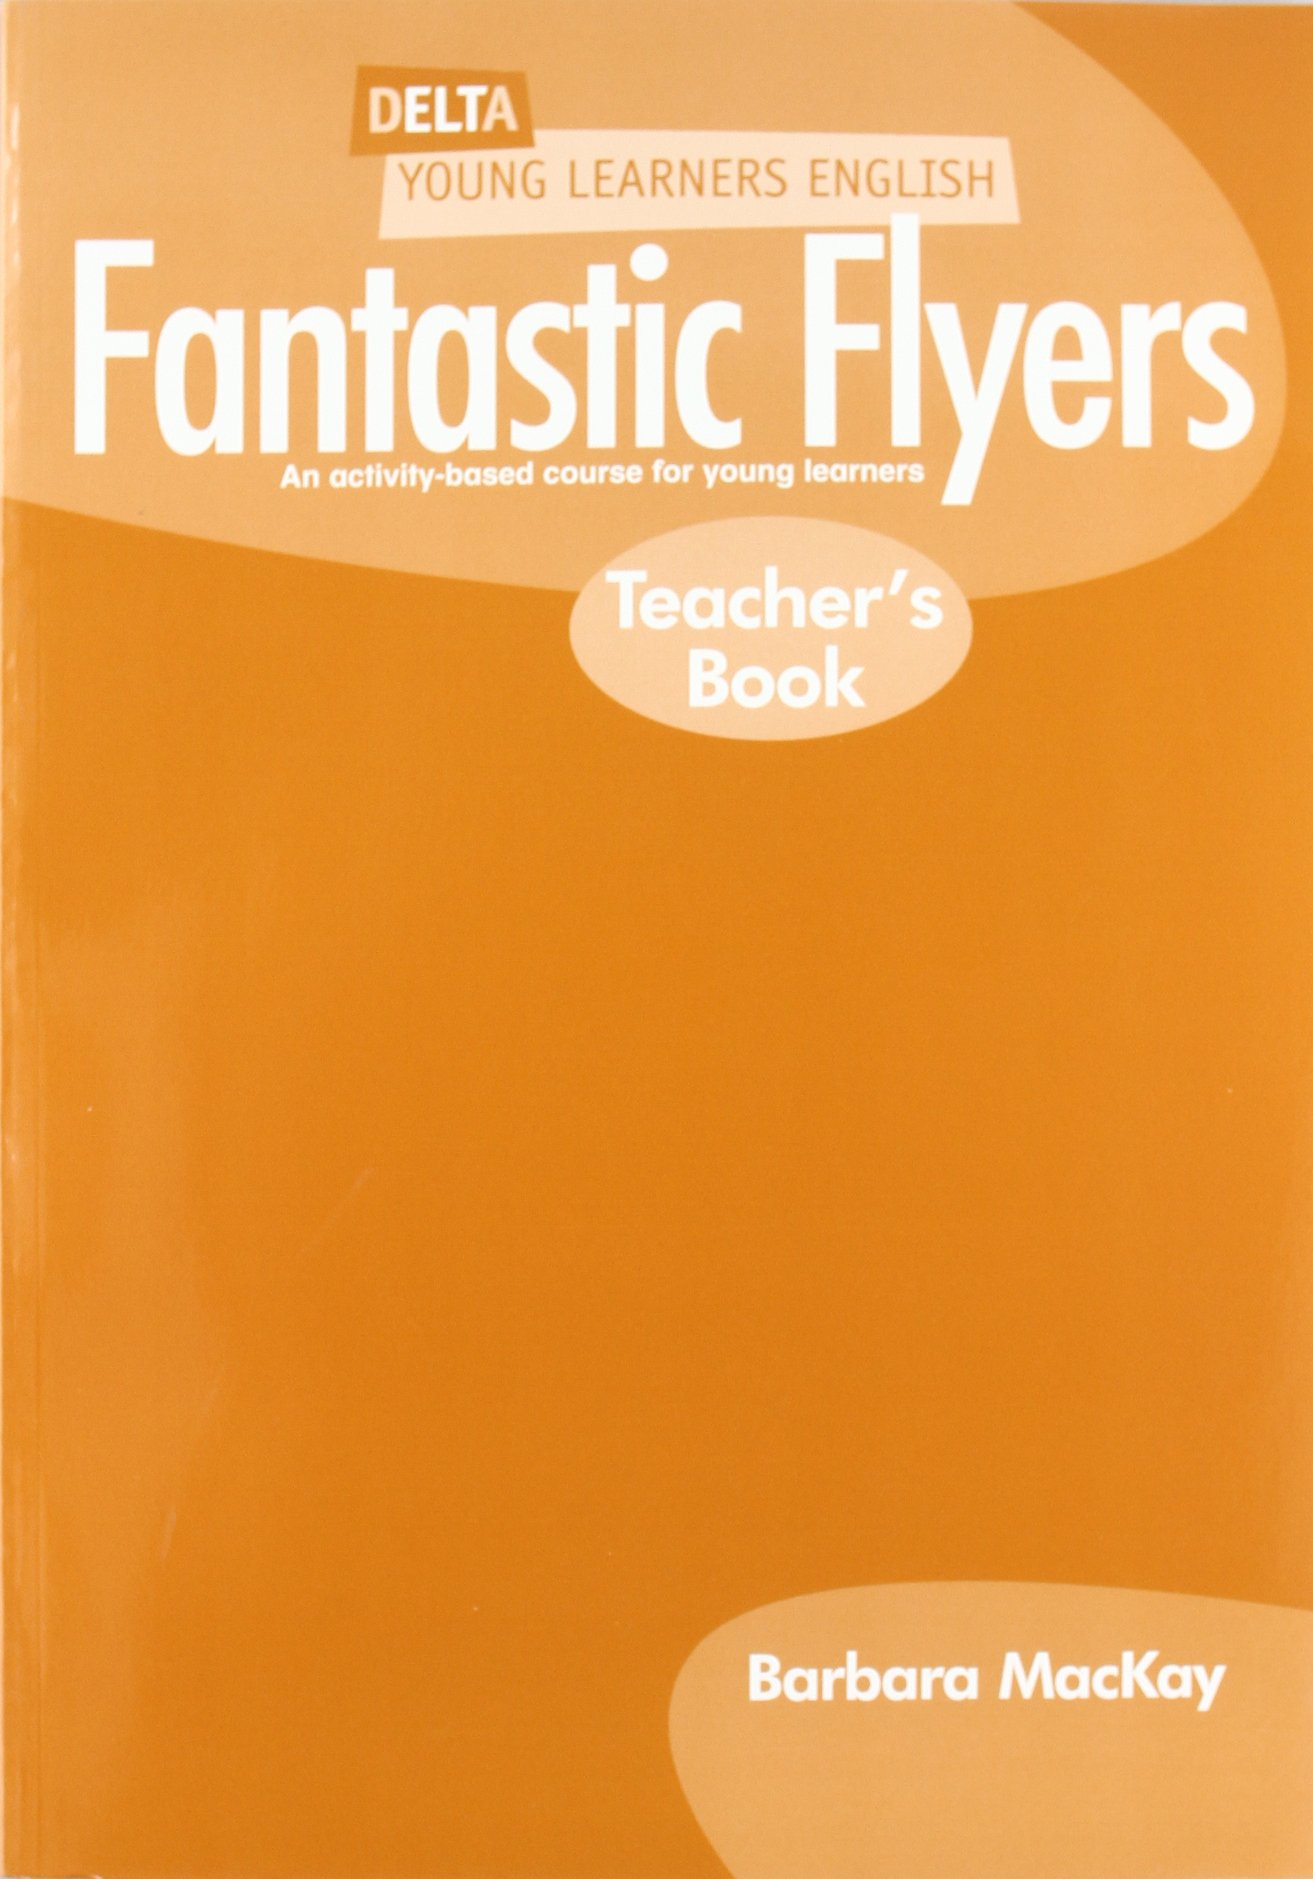 Download Delta Young Learners English: Fantastic Flyers Teachers Book pdf